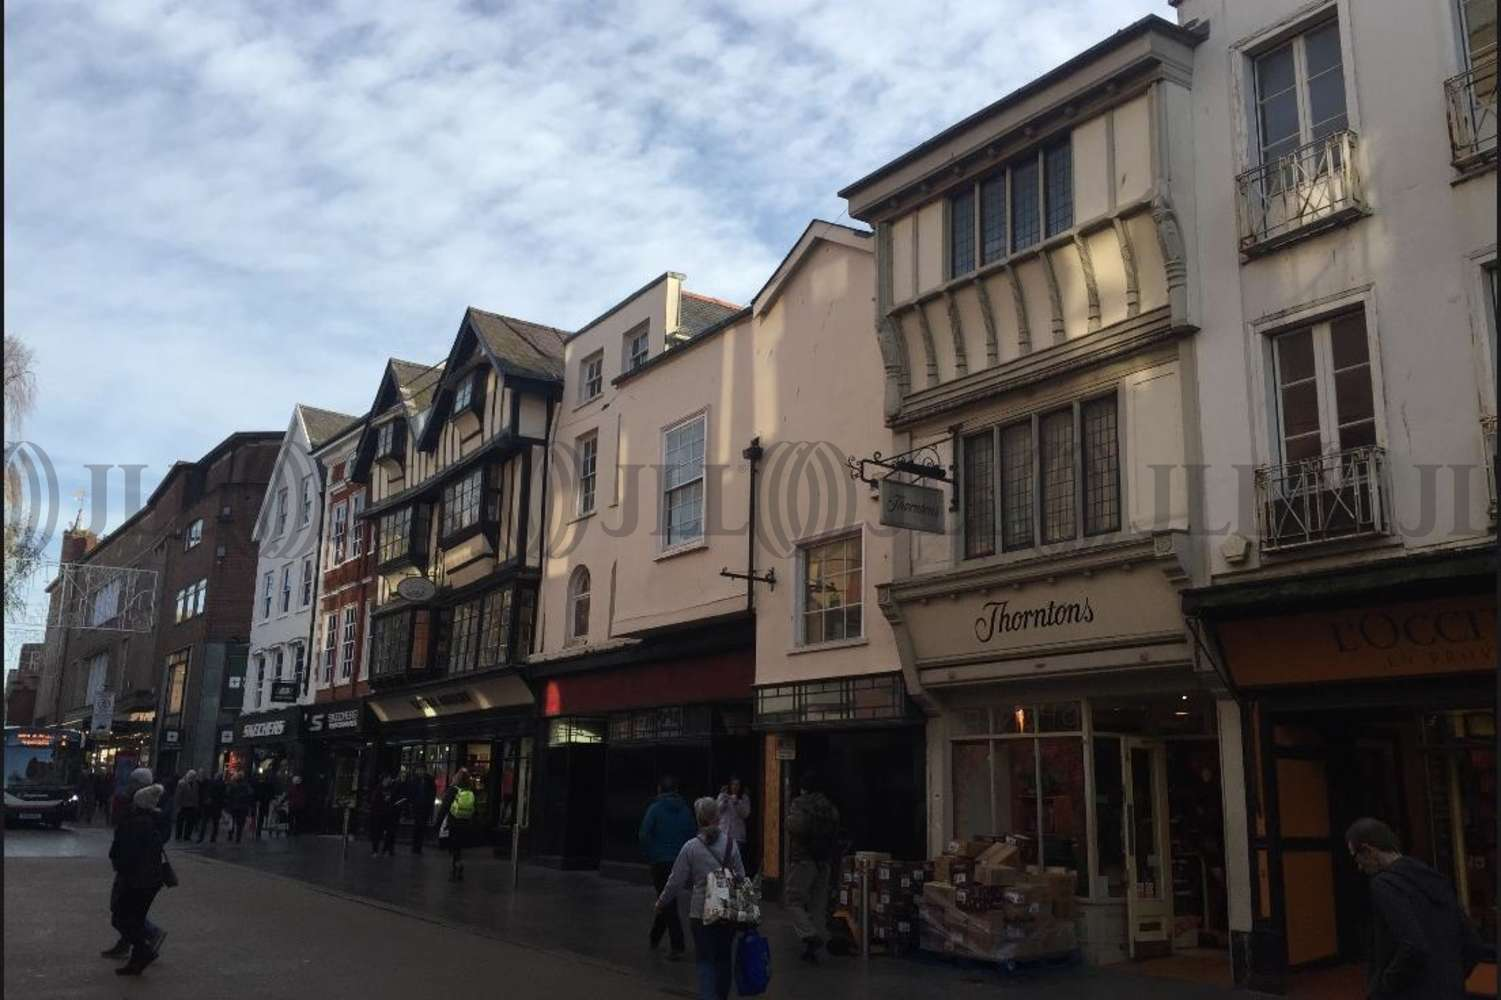 Leisure Exeter, EX4 3PZ - 43-45, High Street, Exeter